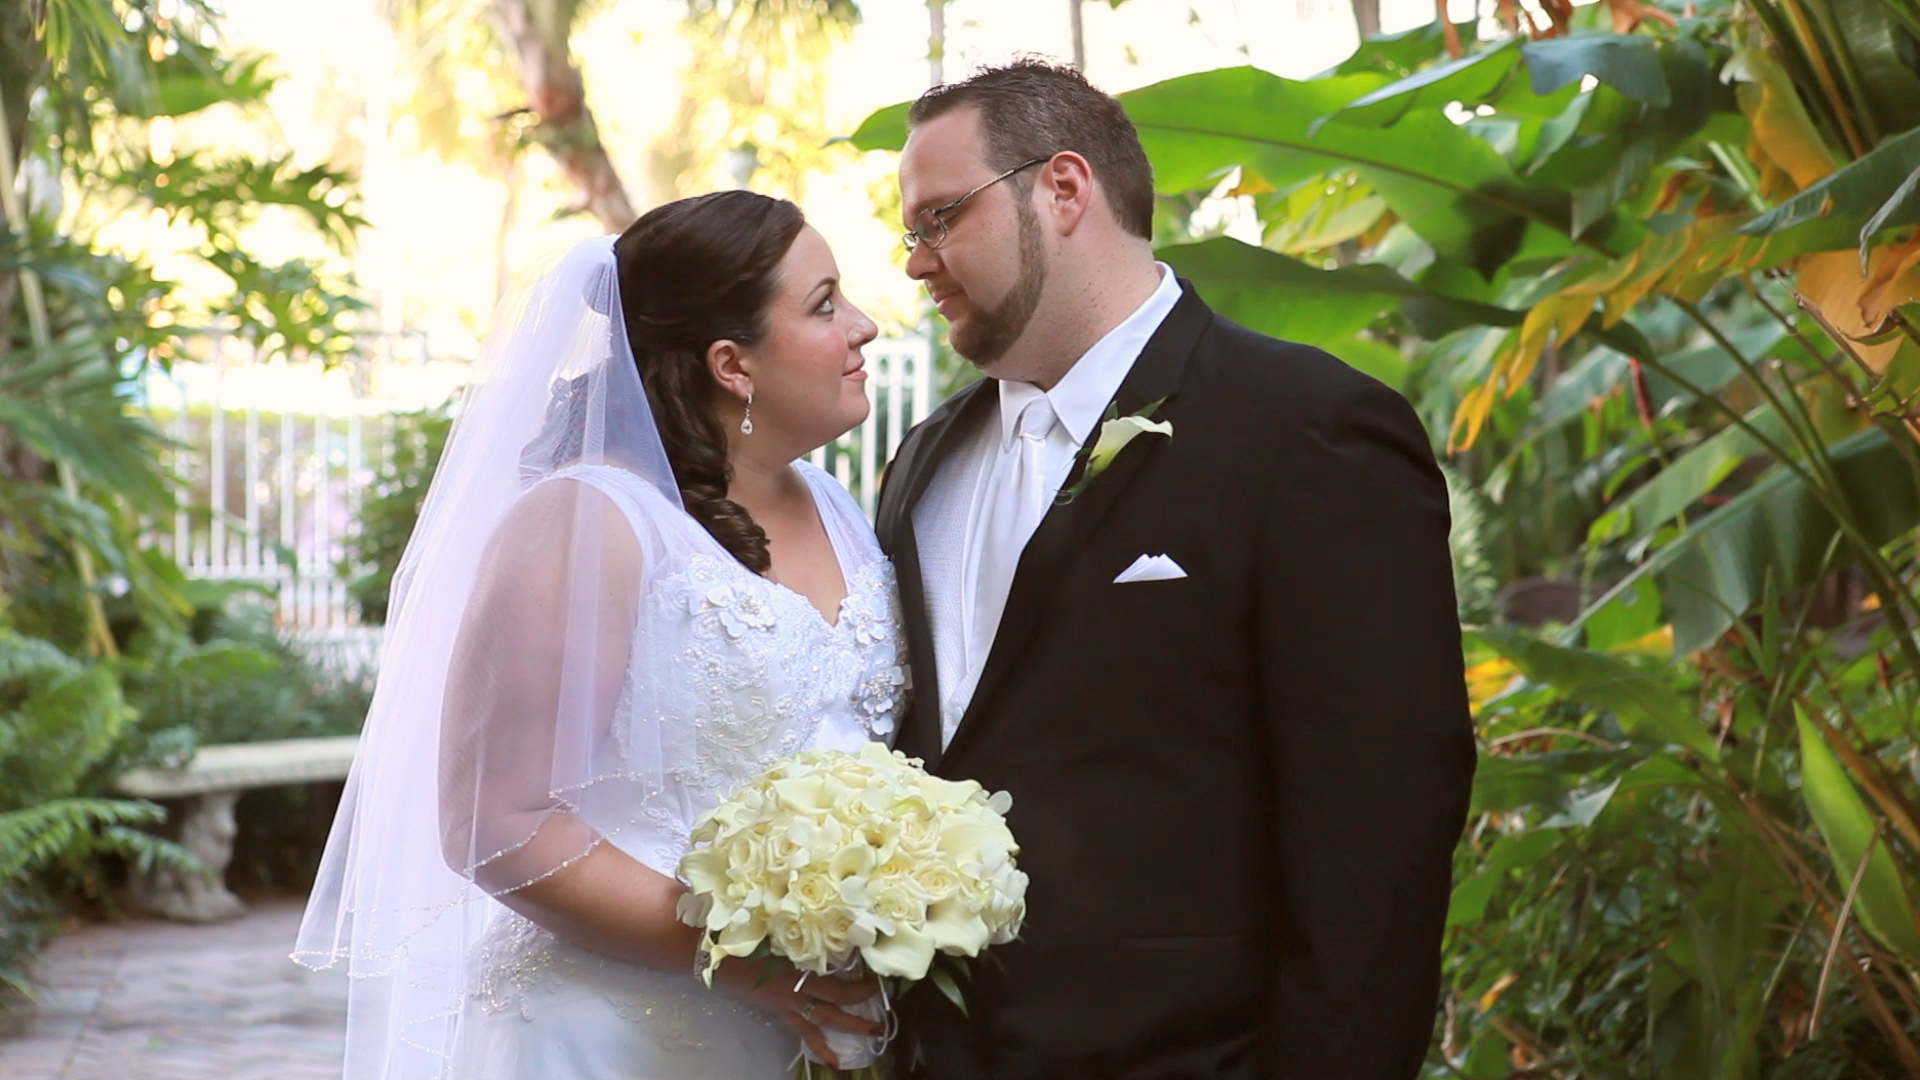 Protected: Congratulations Julie and Bryan